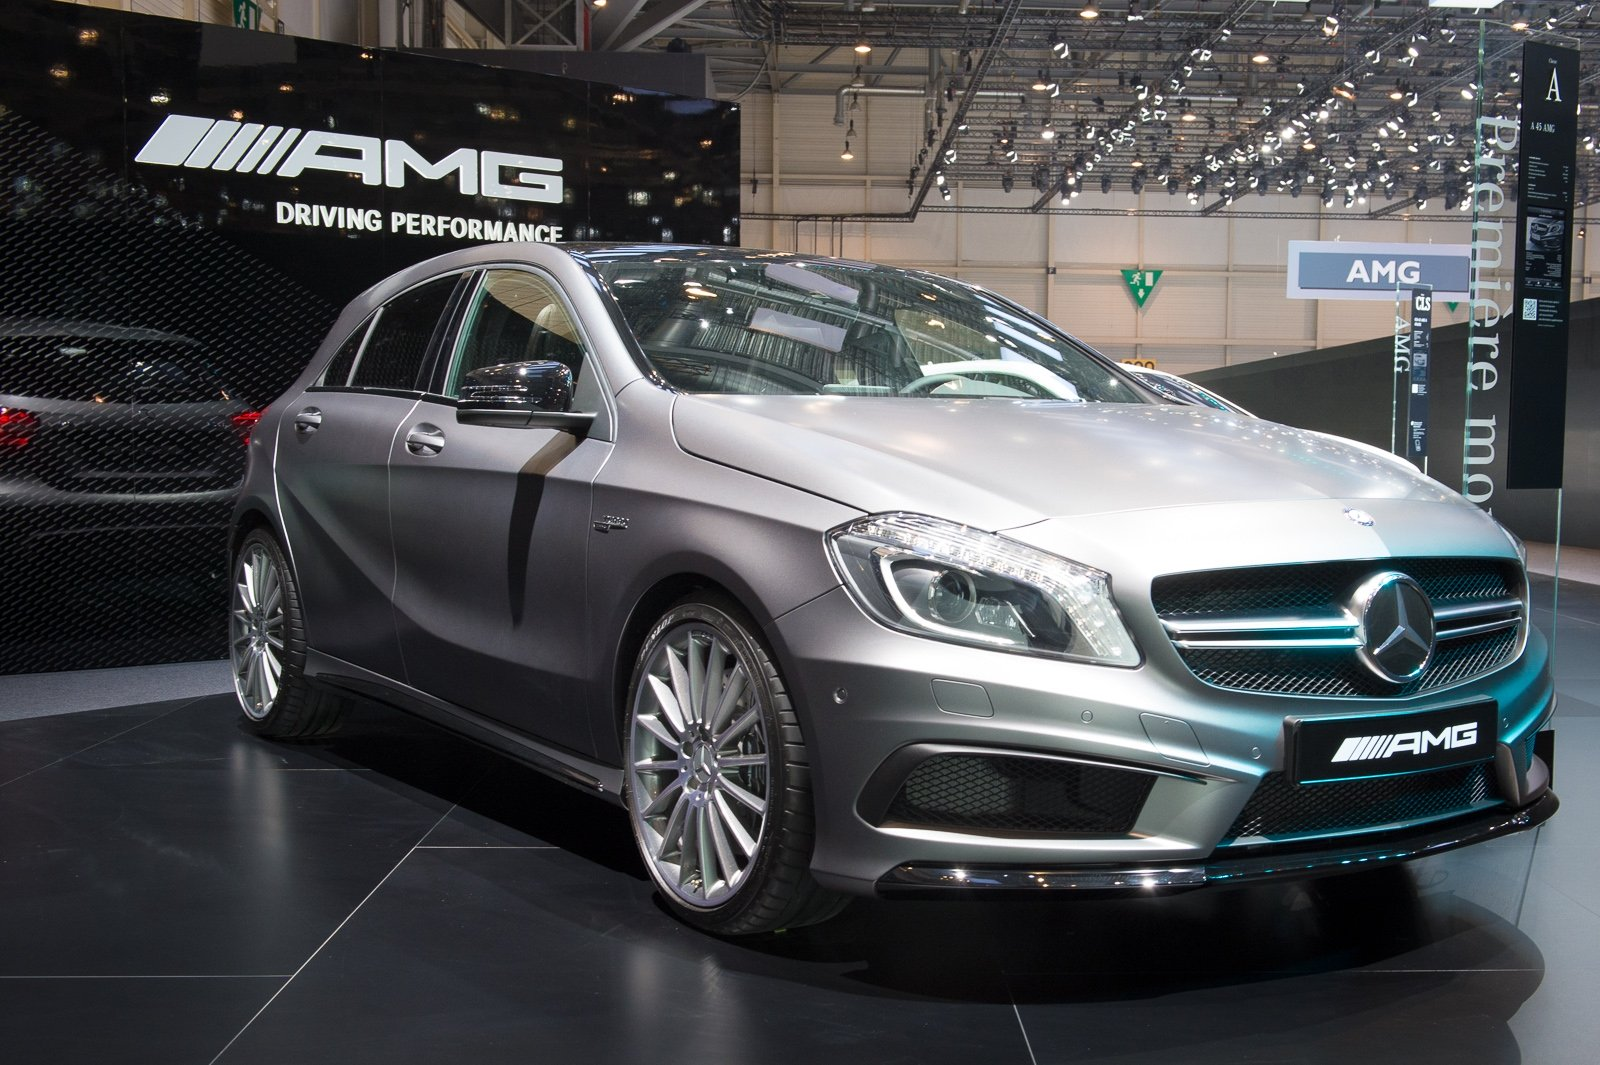 2013-mercedes-benz-a45-amg-mountaingrau-metallic-genf-auto-salon-01